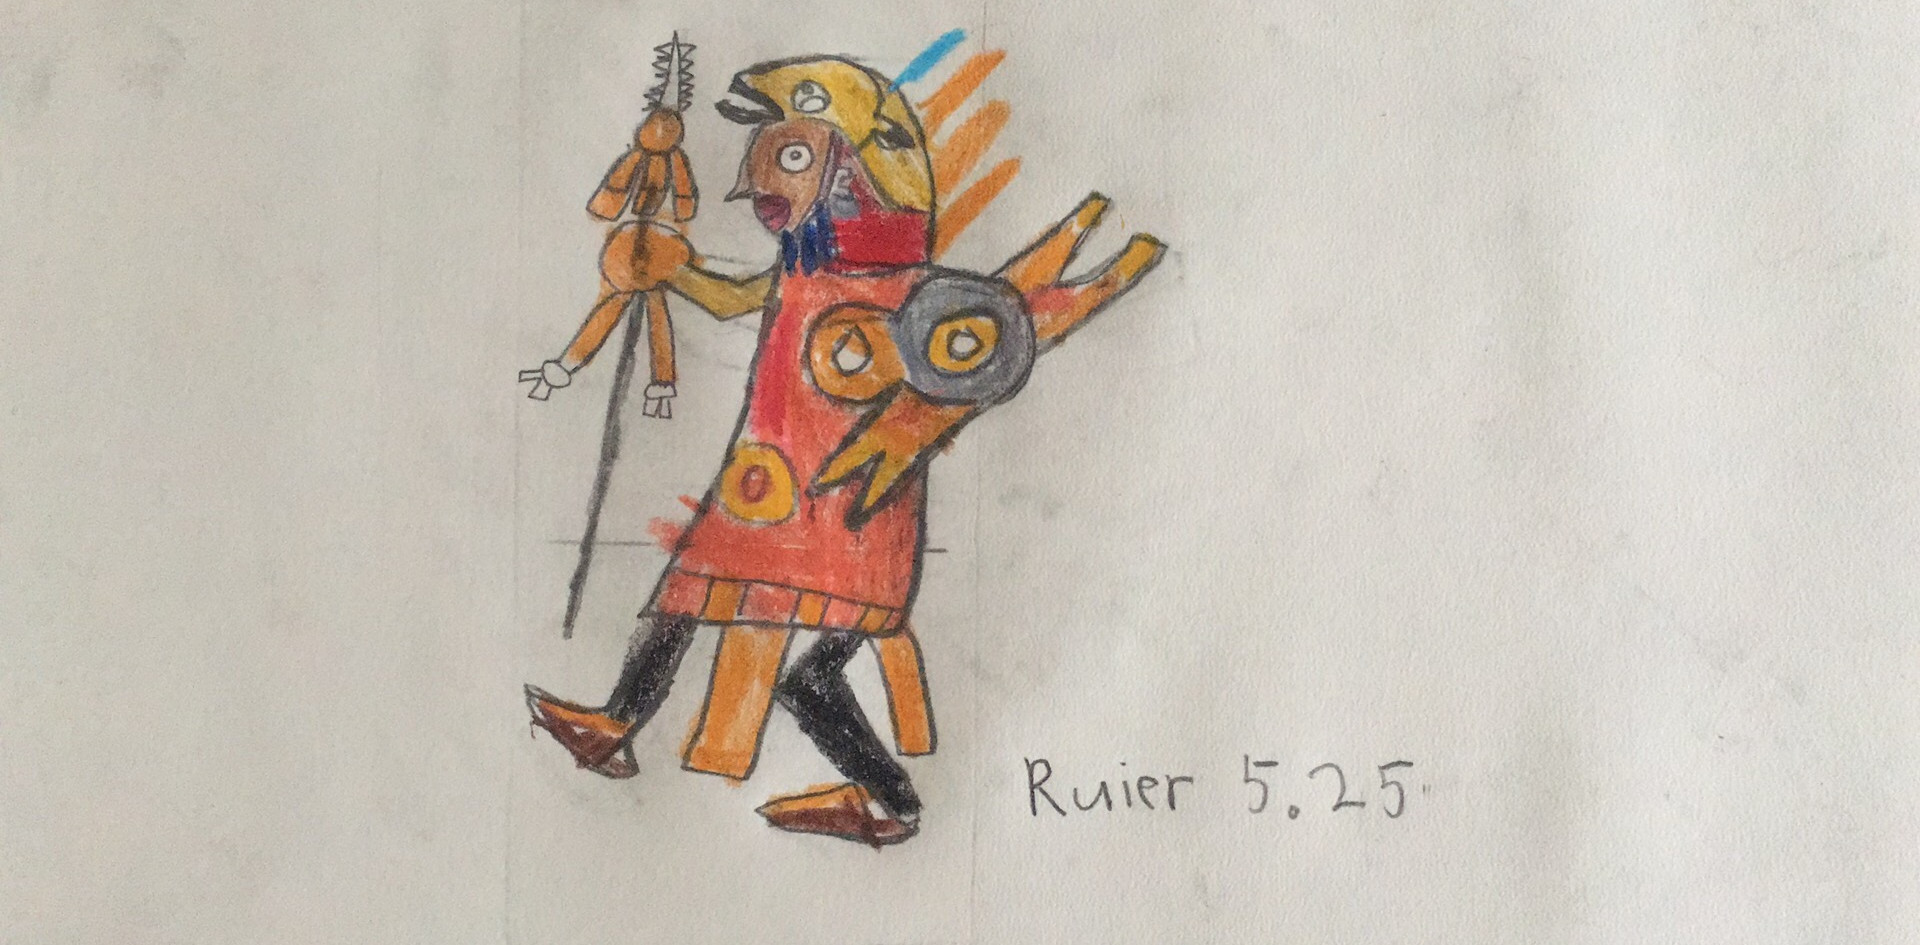 Man from Codex-Rouche-Nuttal.jpeg